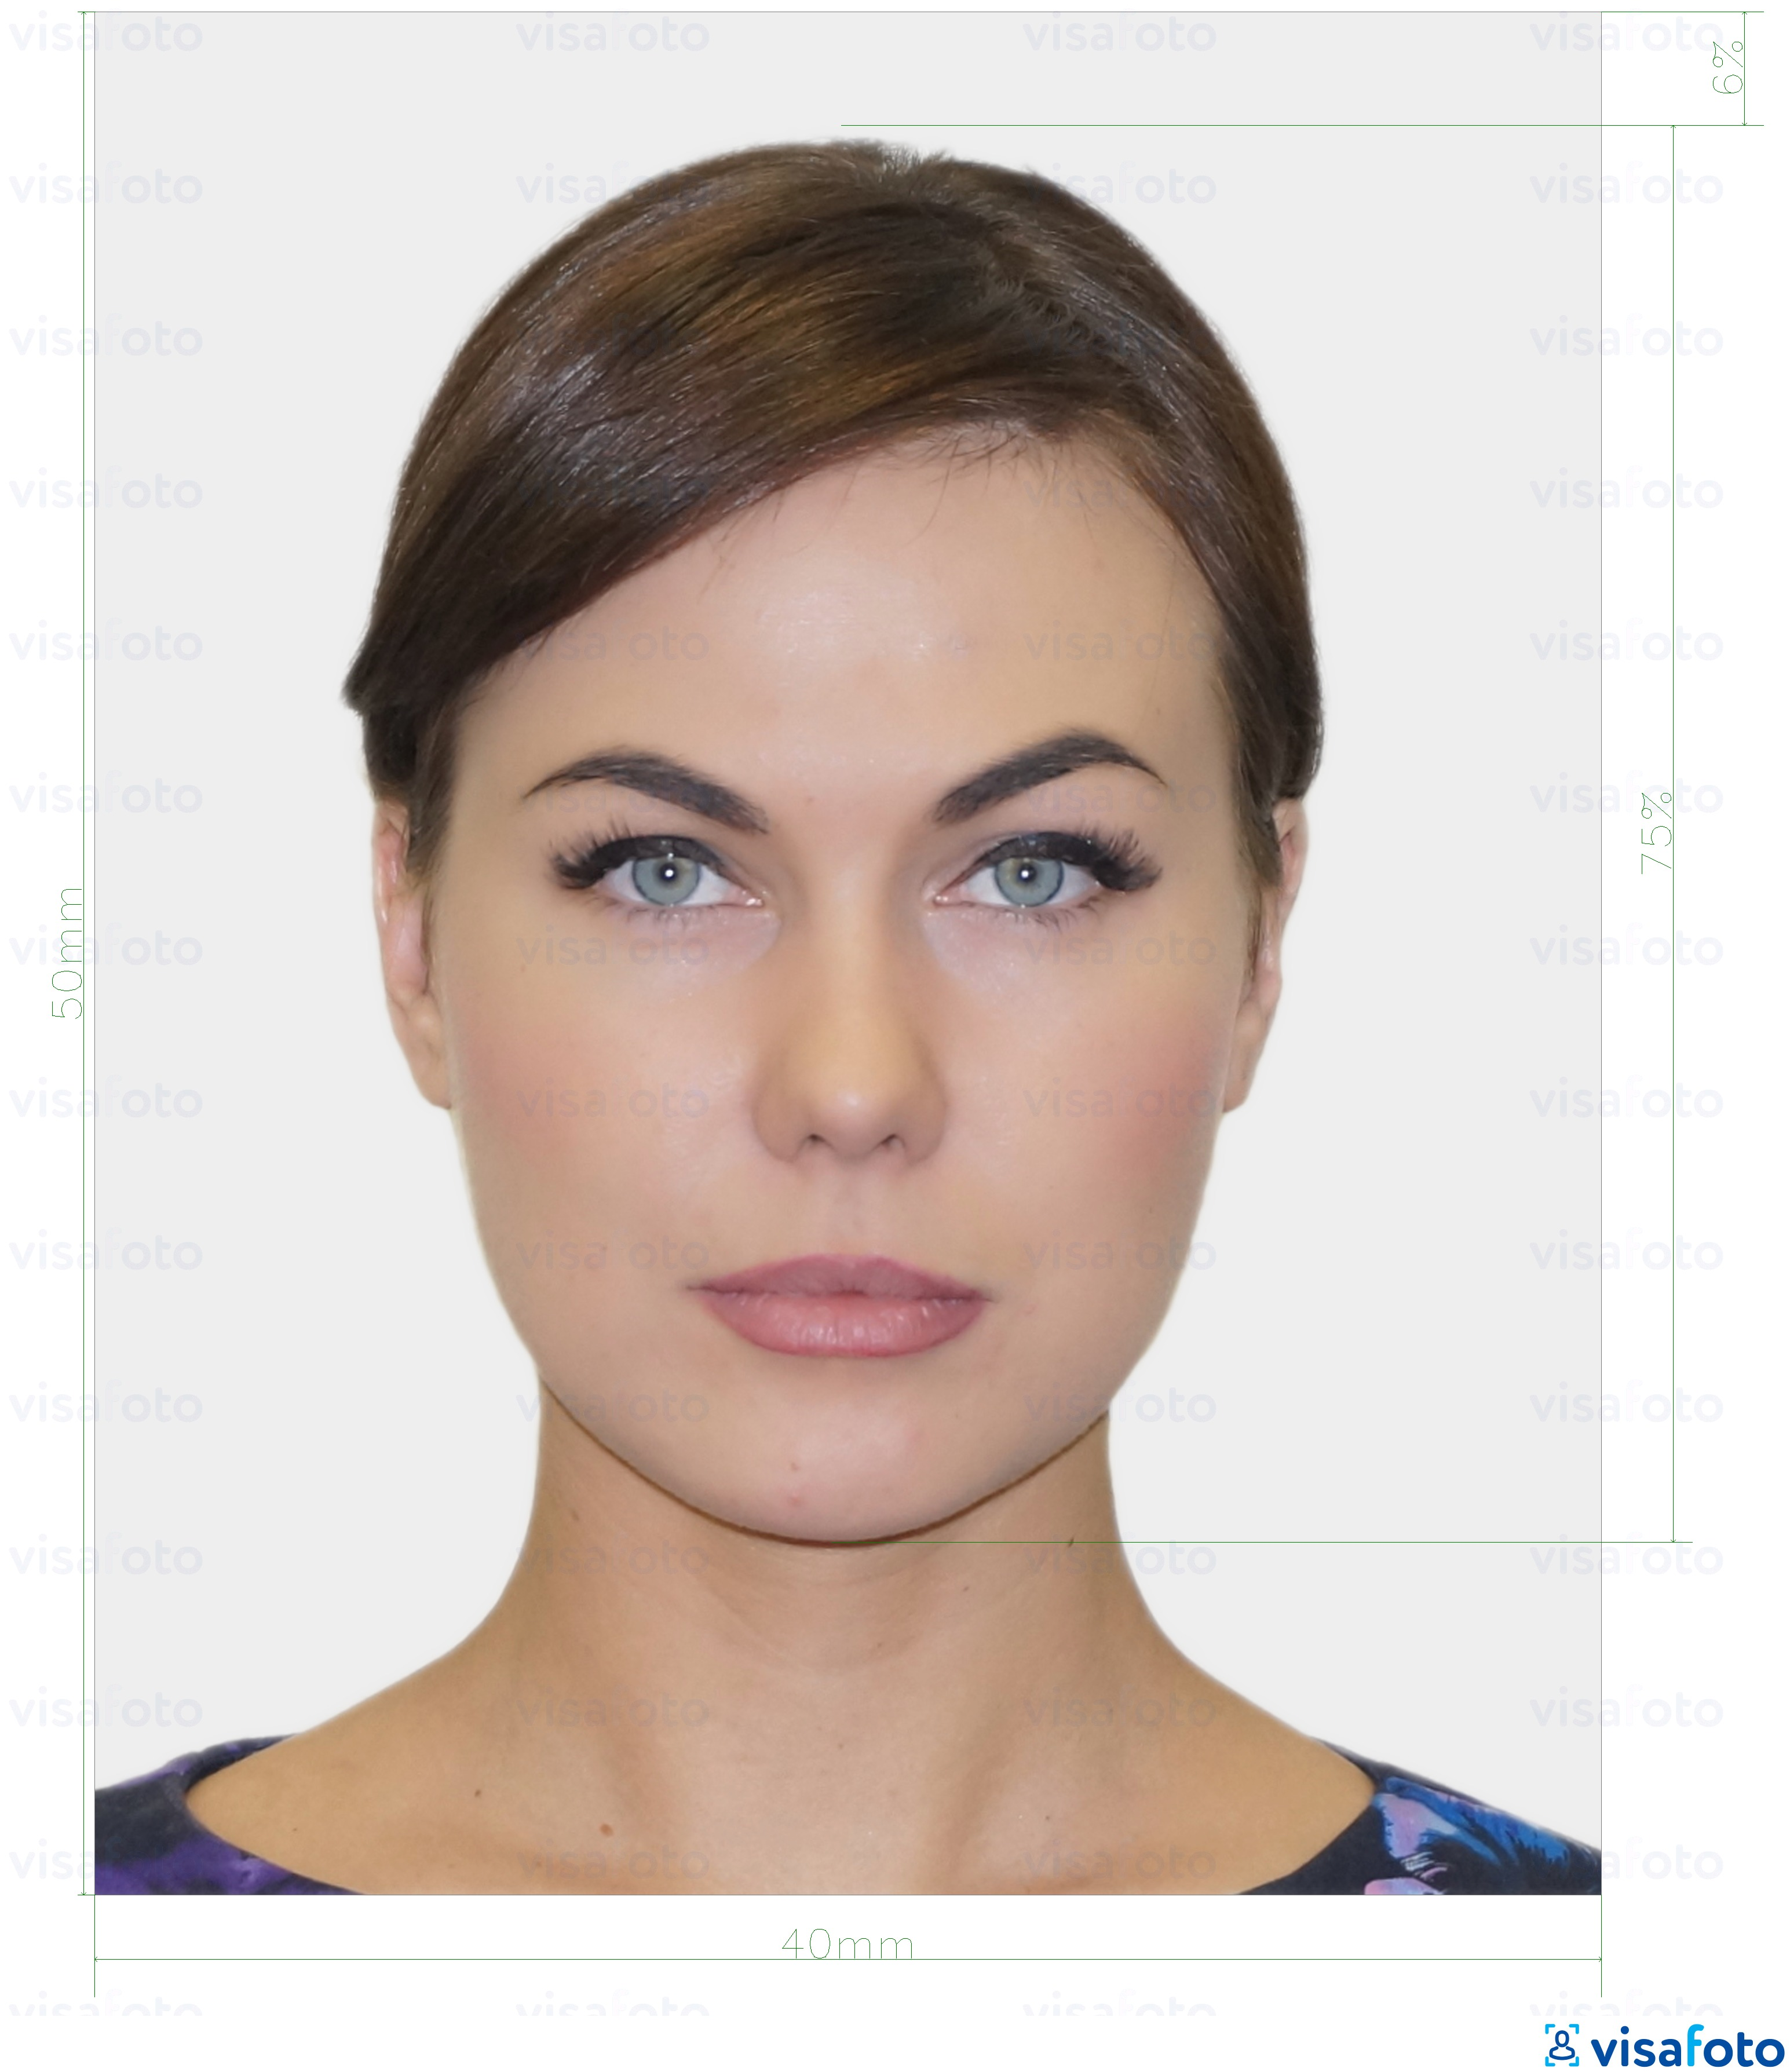 Example of photo for Estonia ID card (ID-kaart) 40x50 mm (4x5 cm) with exact size specification